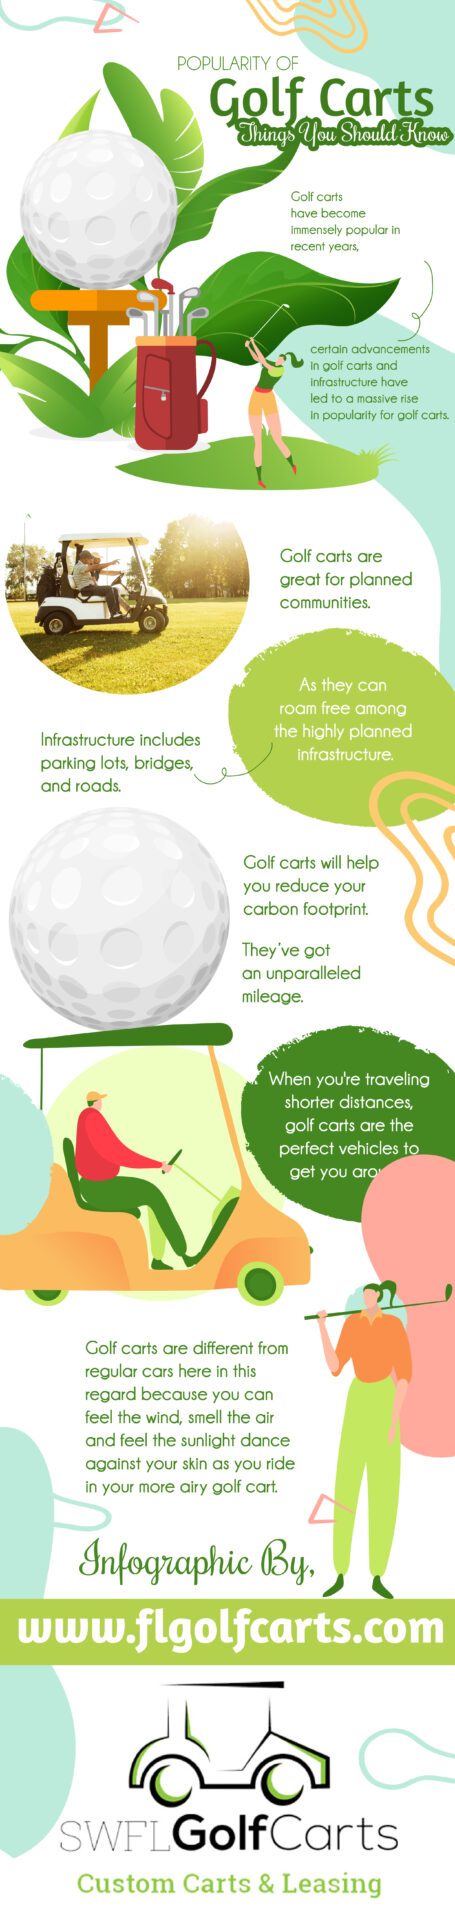 Golf Carts Popualrity Infographic